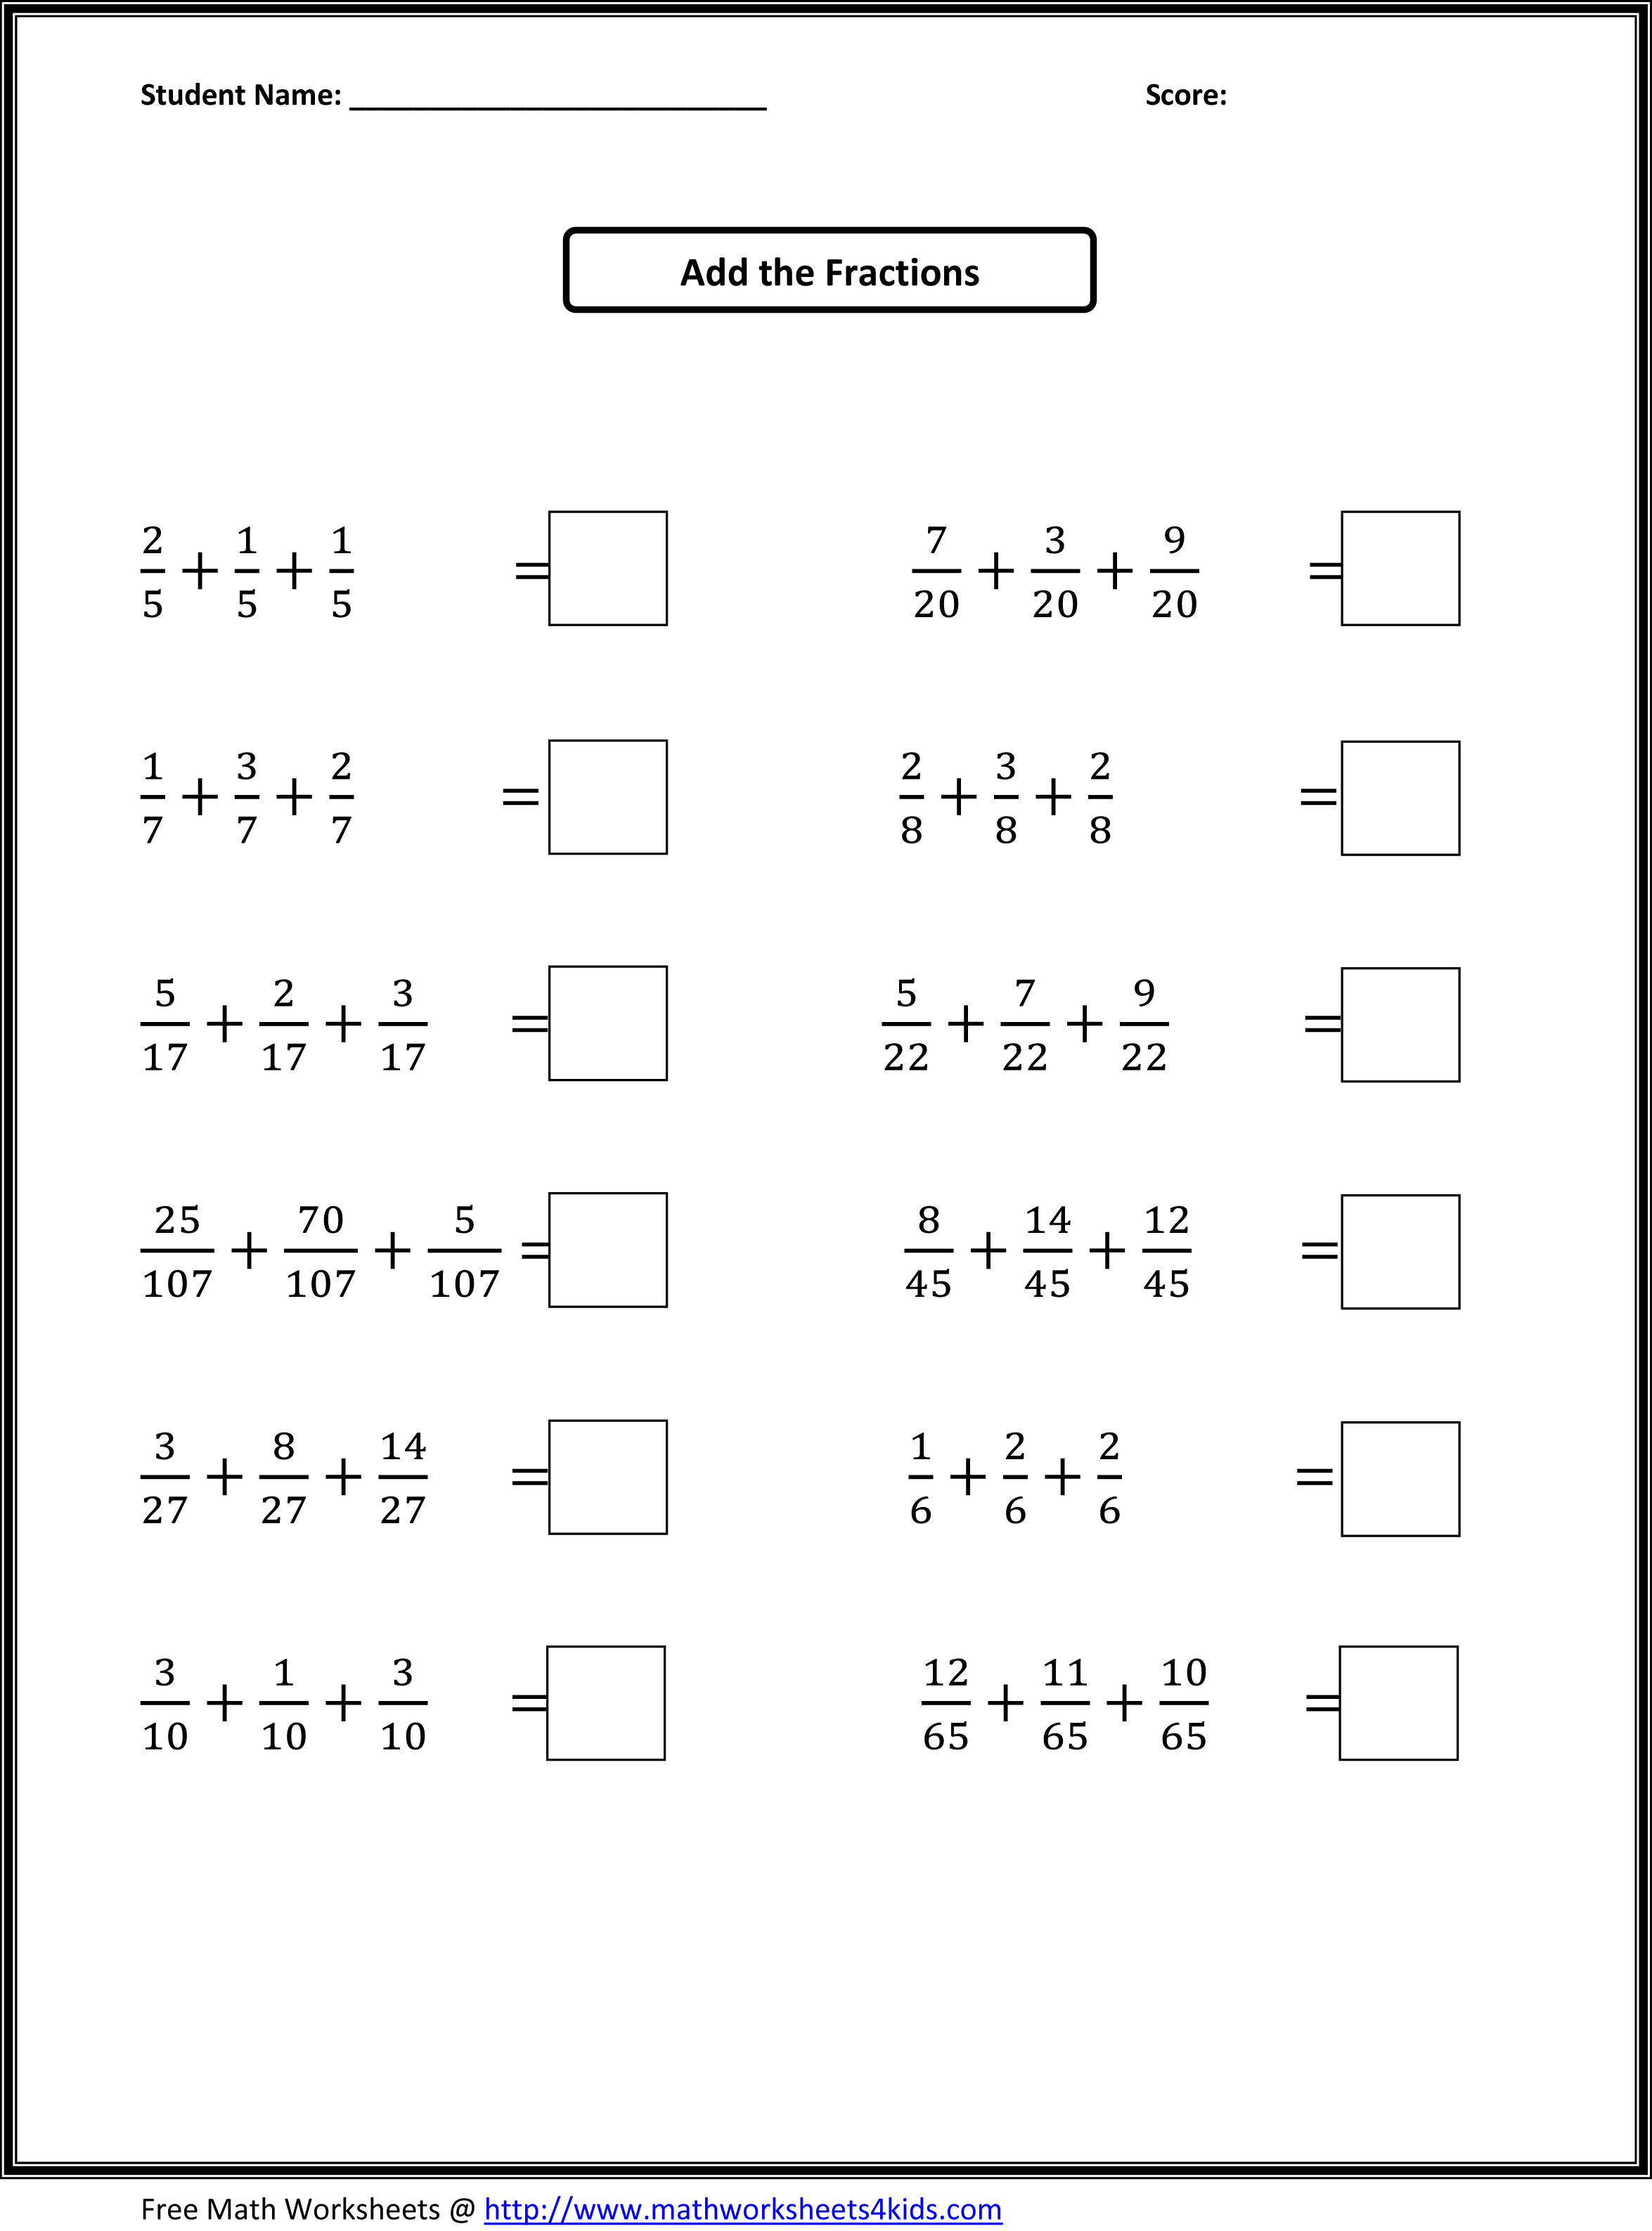 Fraction Worksheets 4th Grade – Worksheet on Fractions for Grade 3